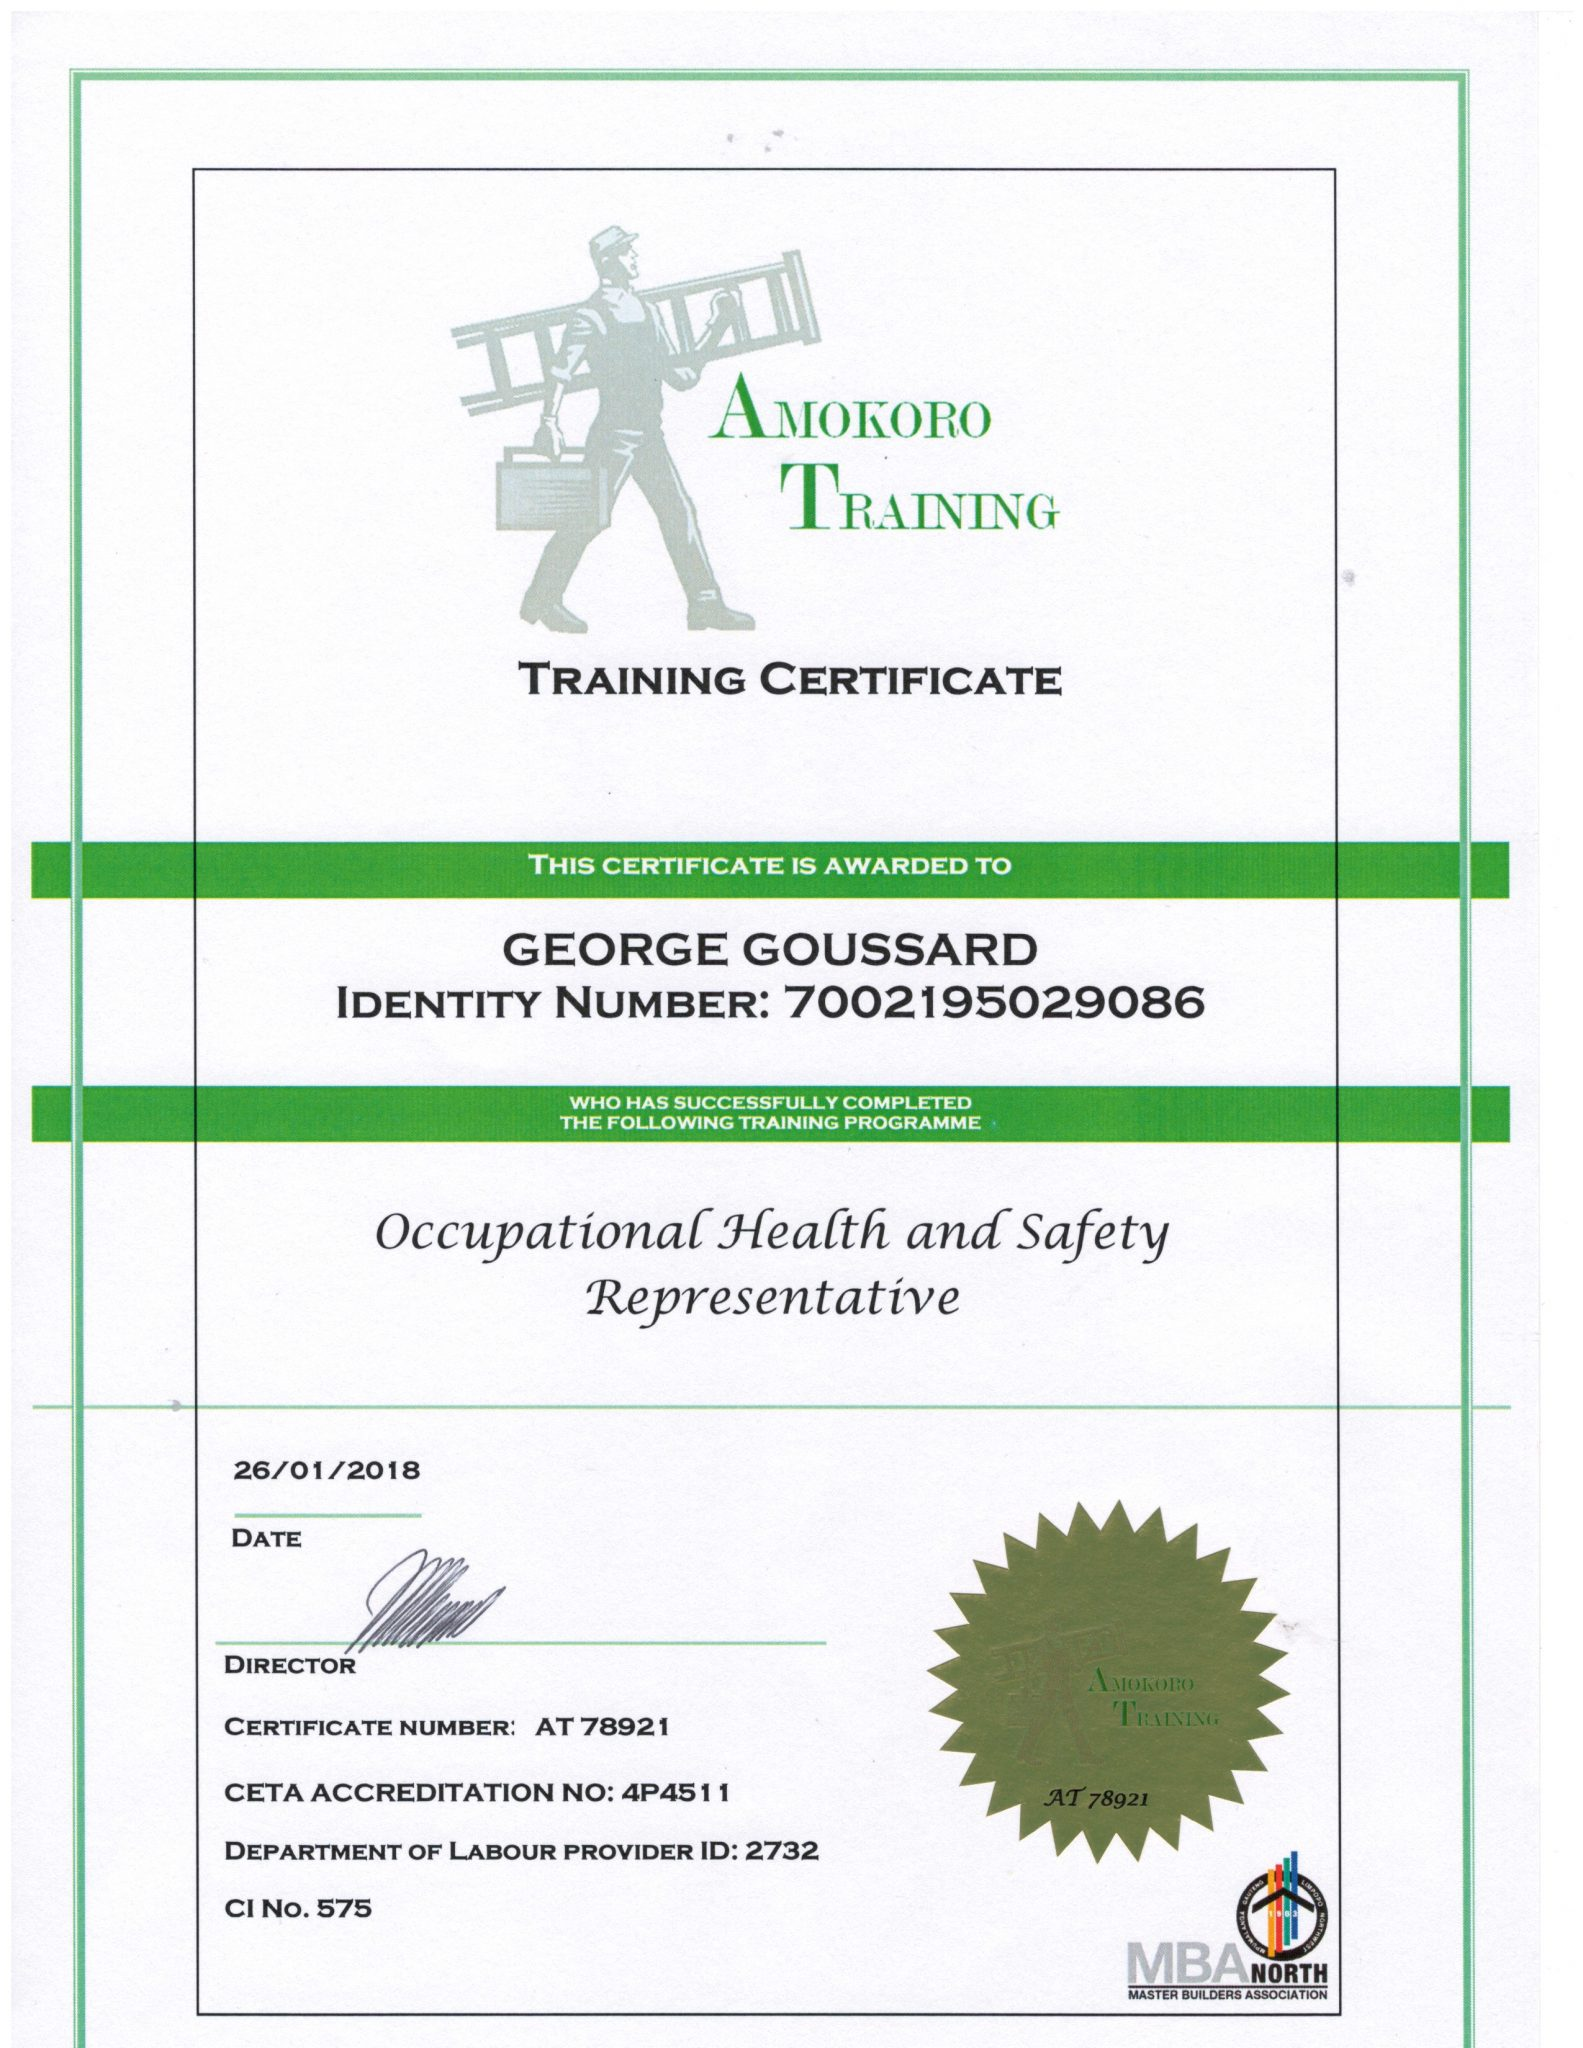 George Goussard Occupational Health and Safety Representative